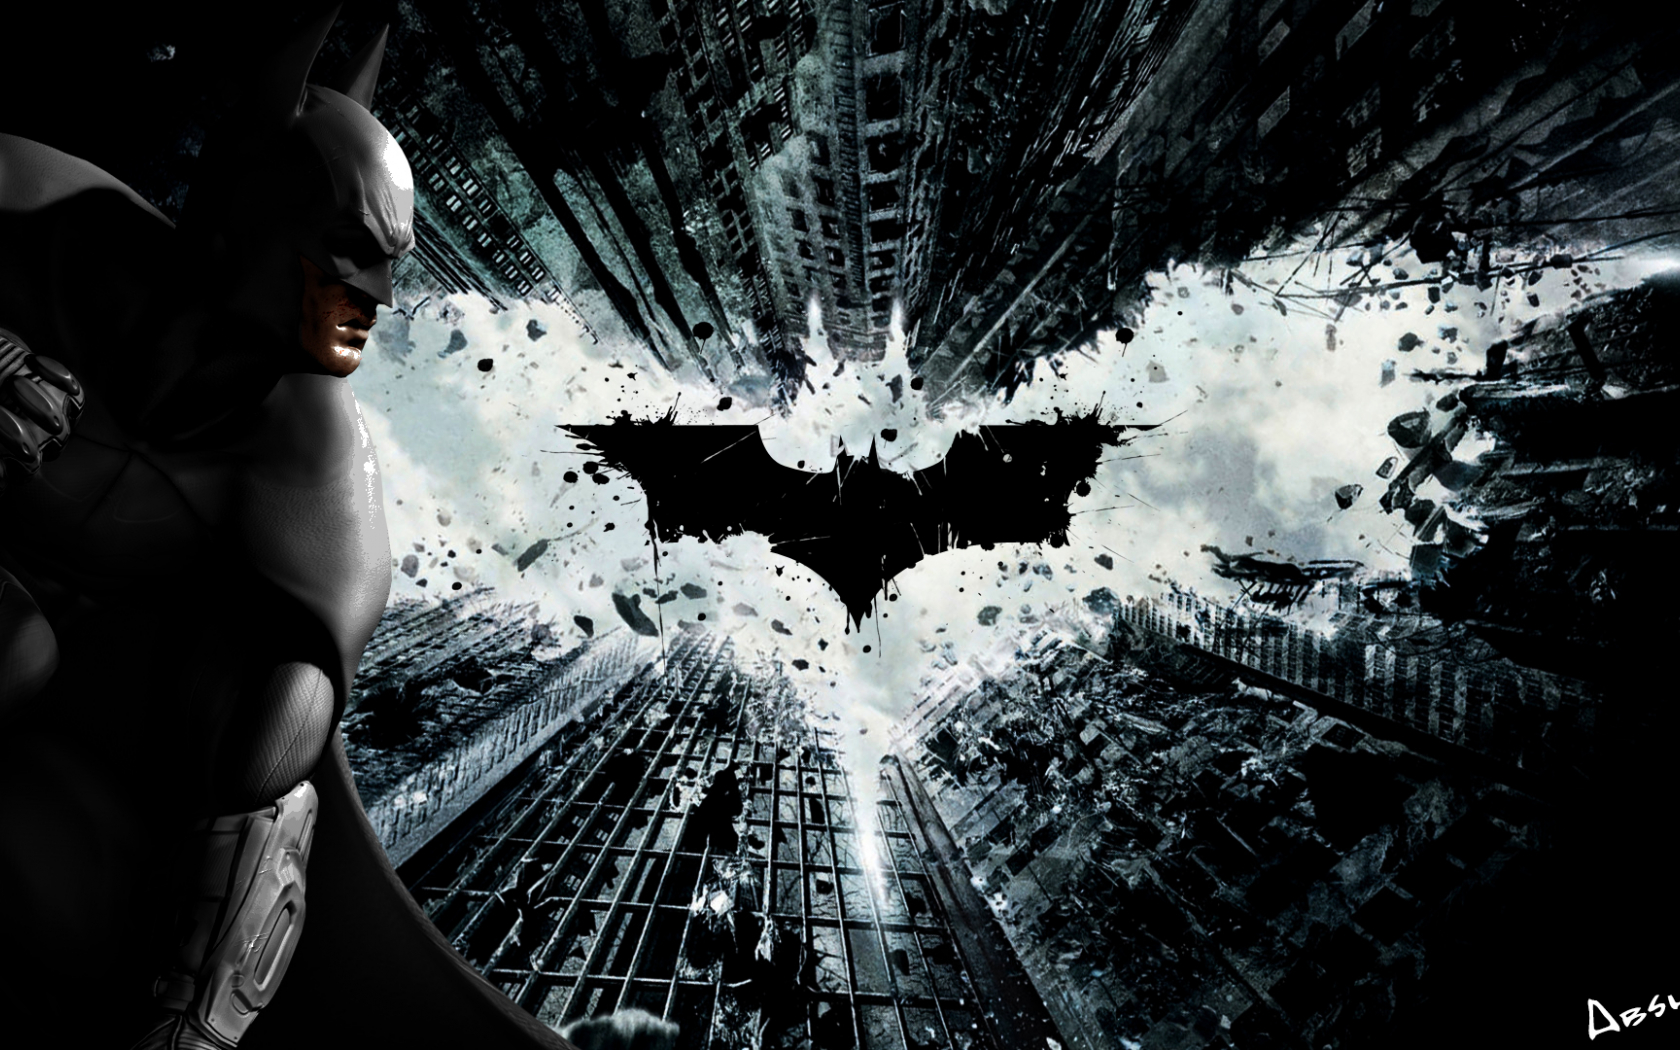 Free Download The Dark Knight Rises Wallpaper 1920x1080 By